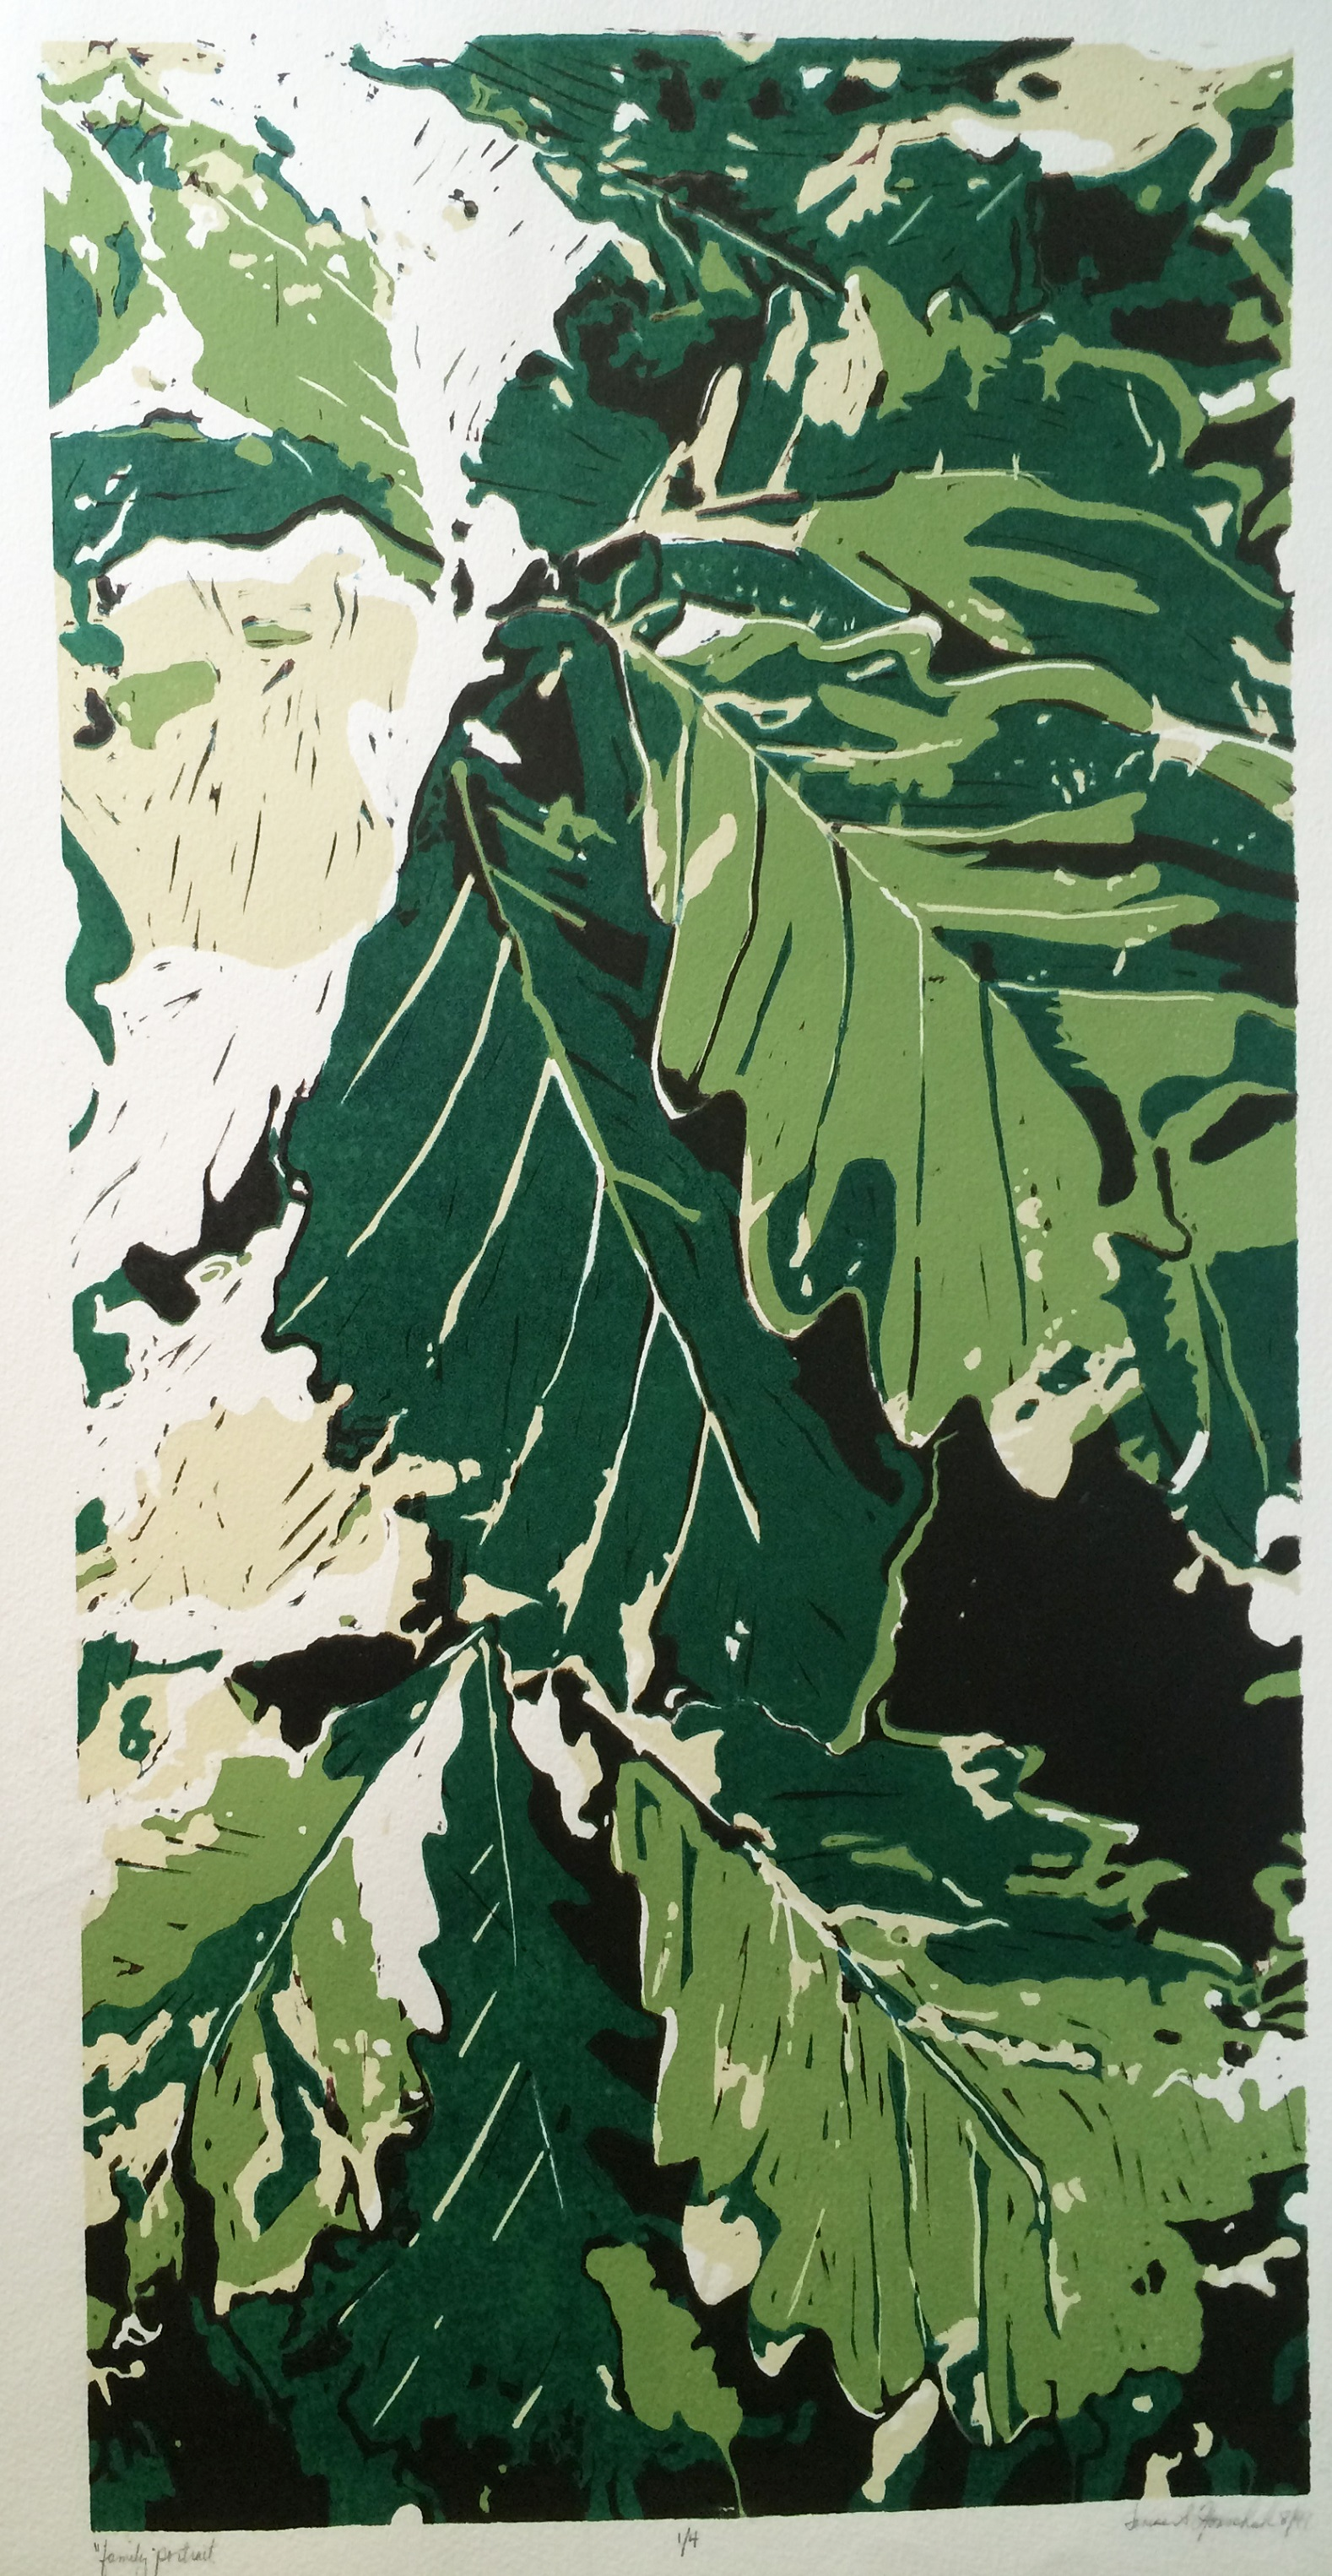 family portrait oak leaves linoleum reduction cut print 24 inches by 12 inches